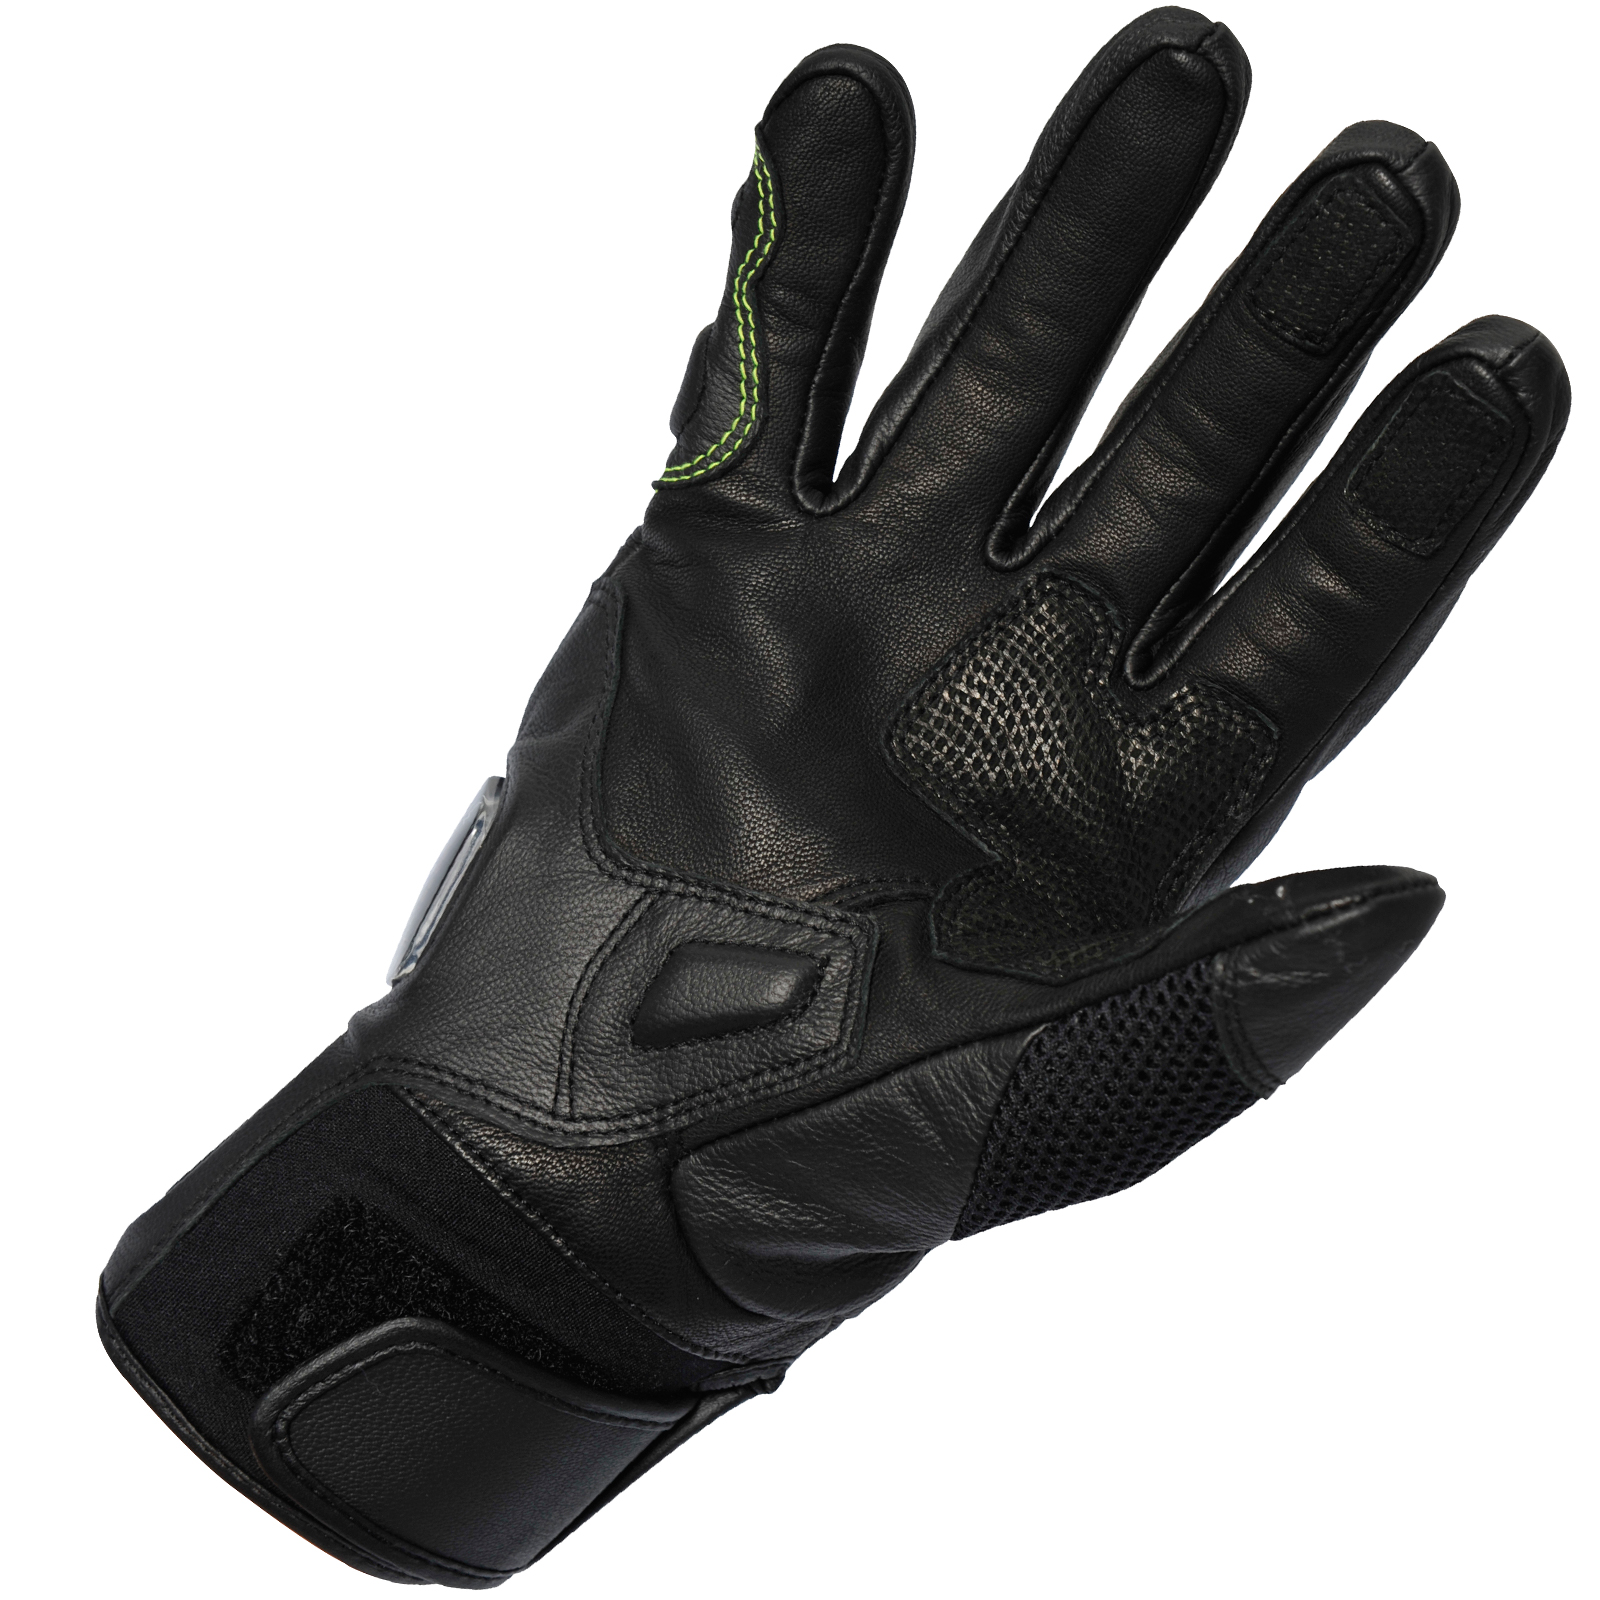 Motorcycle gloves richa - Richa Blast Motorcycle Gloves Leather Air Strech Mesh